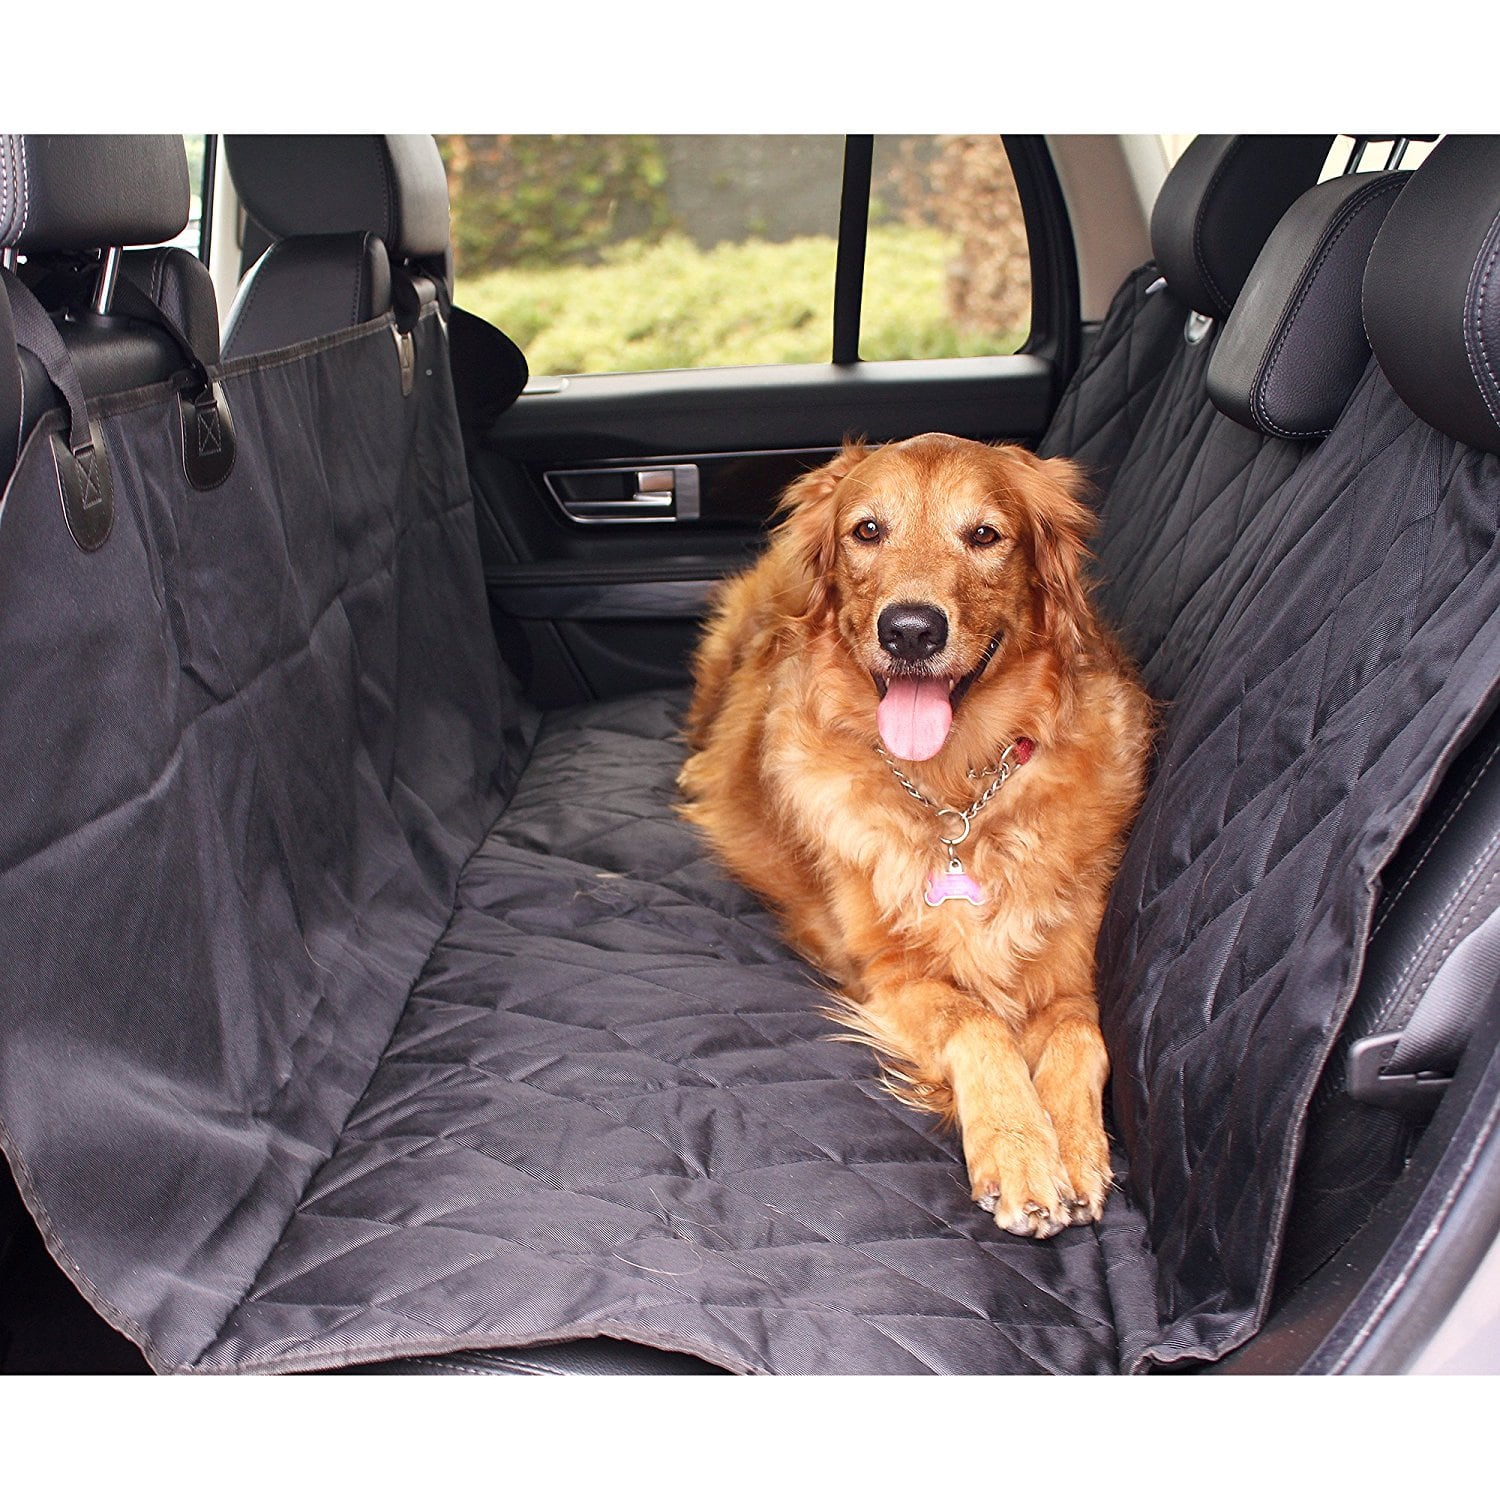 BarksBar - Luxury Non-Slip Pet Car Seat Cover (Standard or XL) 15% Off $22.09